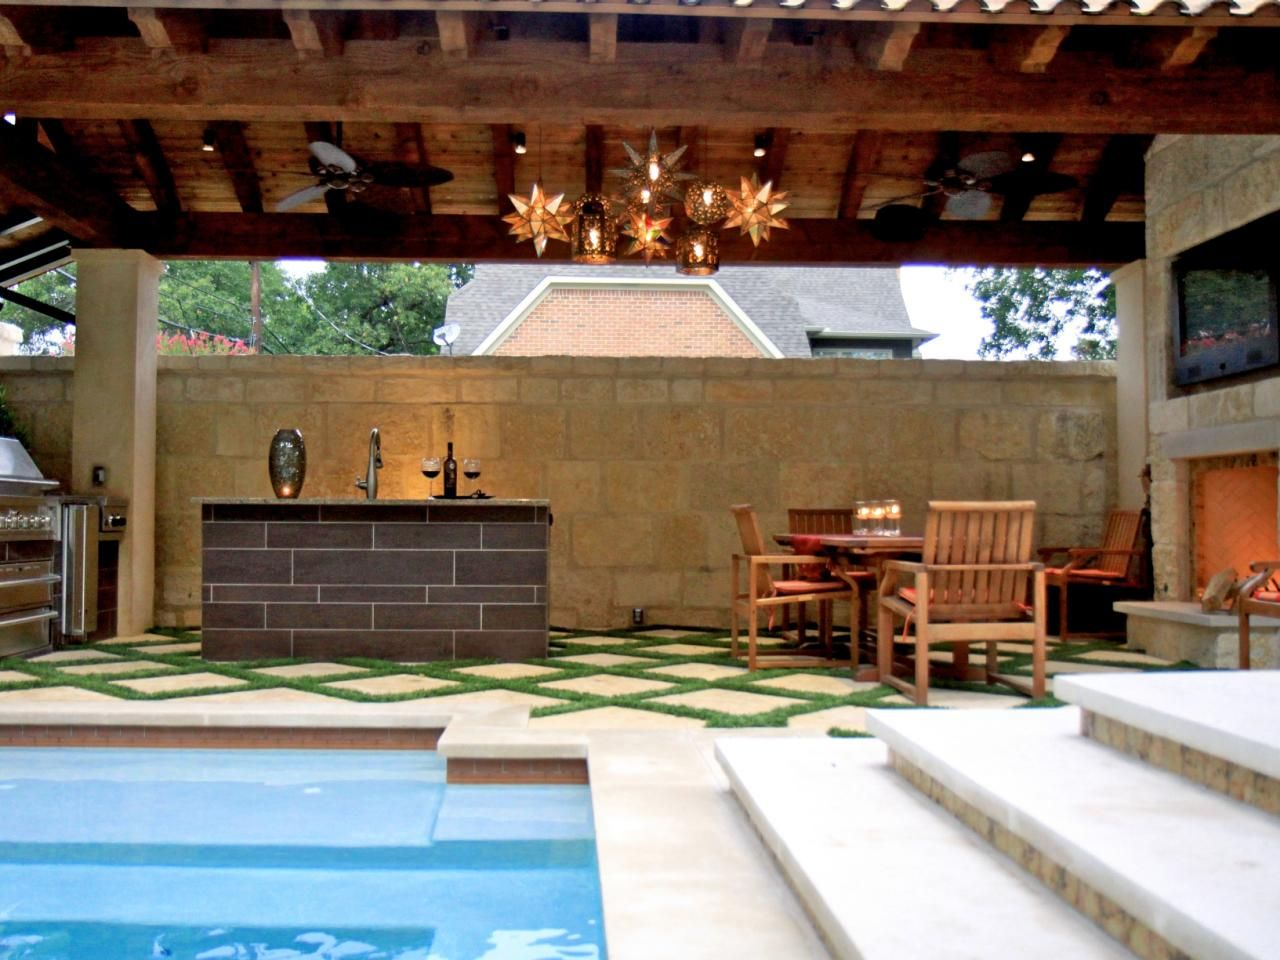 Outdoor Kitchens | Grass pavers, Swimming pools and Outdoor living ...